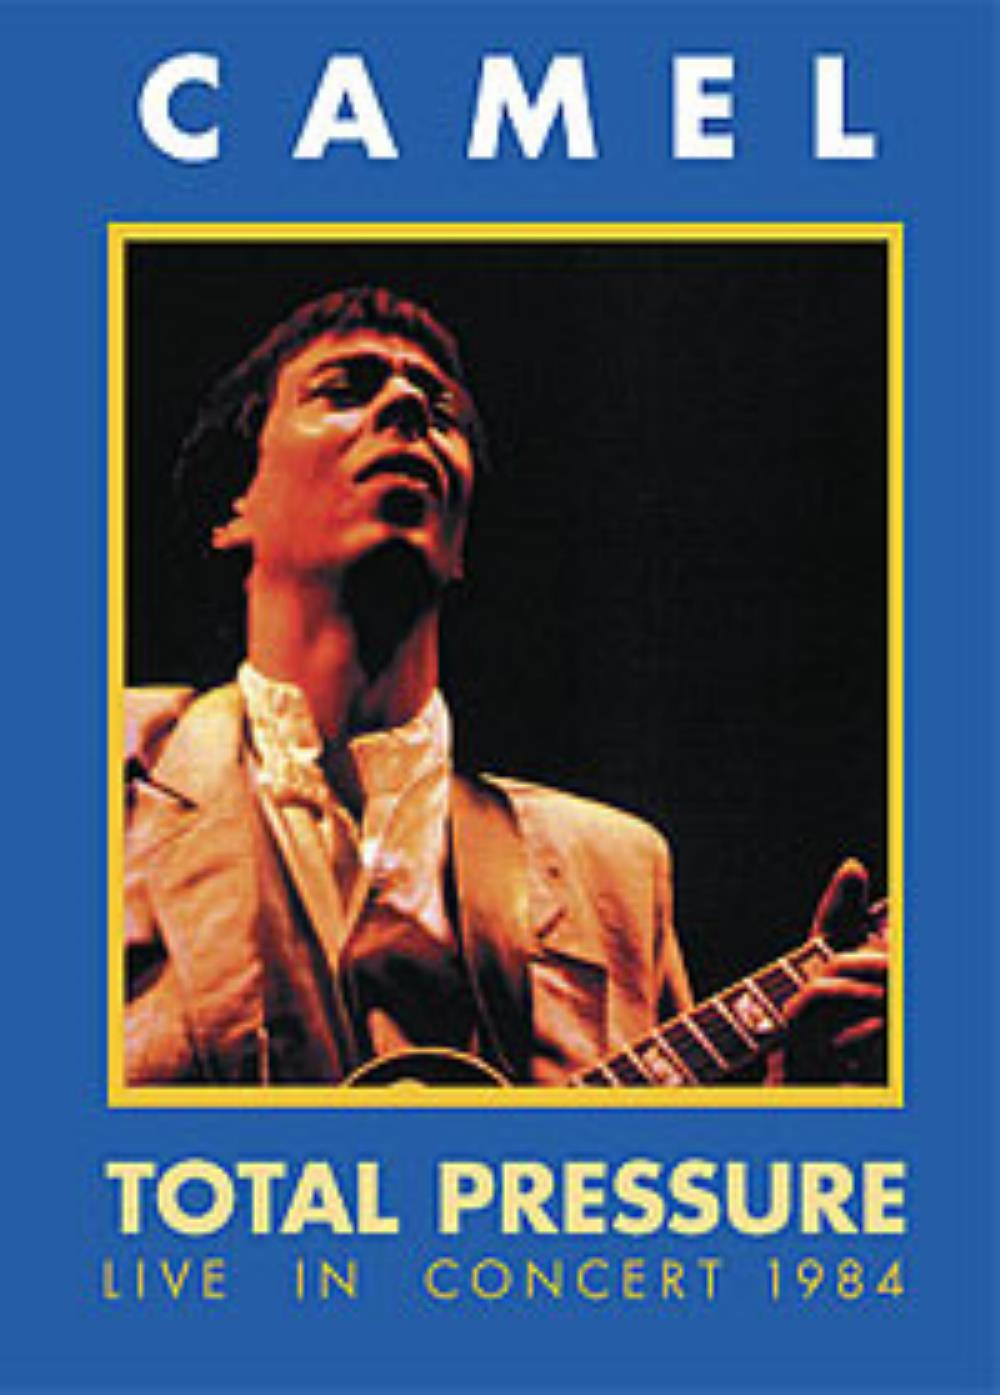 Total Pressure - Live In Concert 1984 by CAMEL album cover